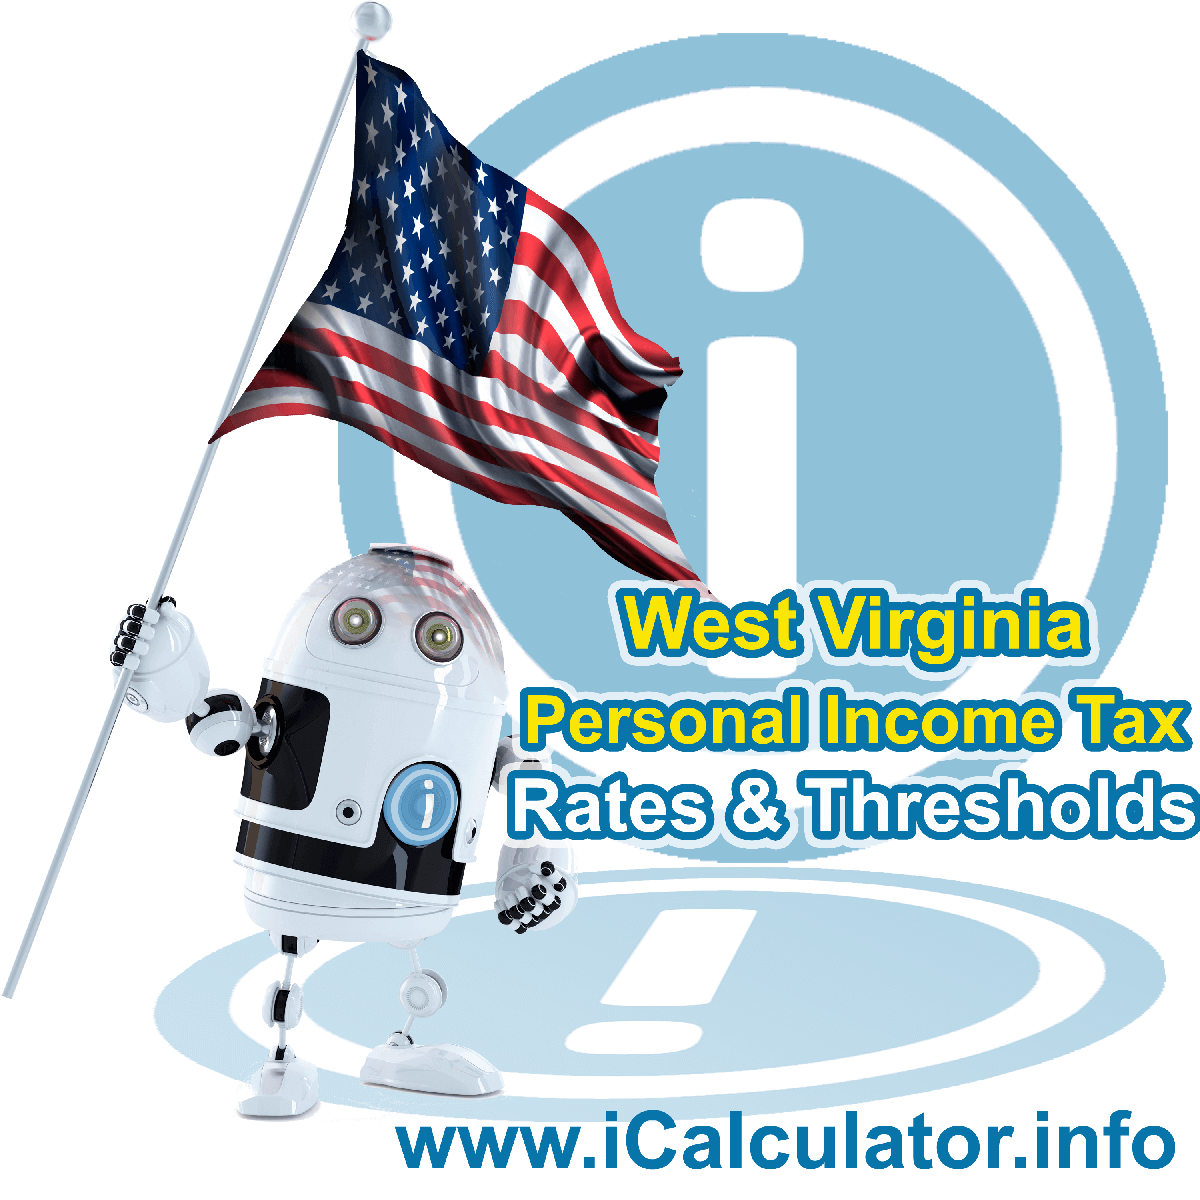 West Virginia State Tax Tables 2018. This image displays details of the West Virginia State Tax Tables for the 2018 tax return year which is provided in support of the 2018 US Tax Calculator